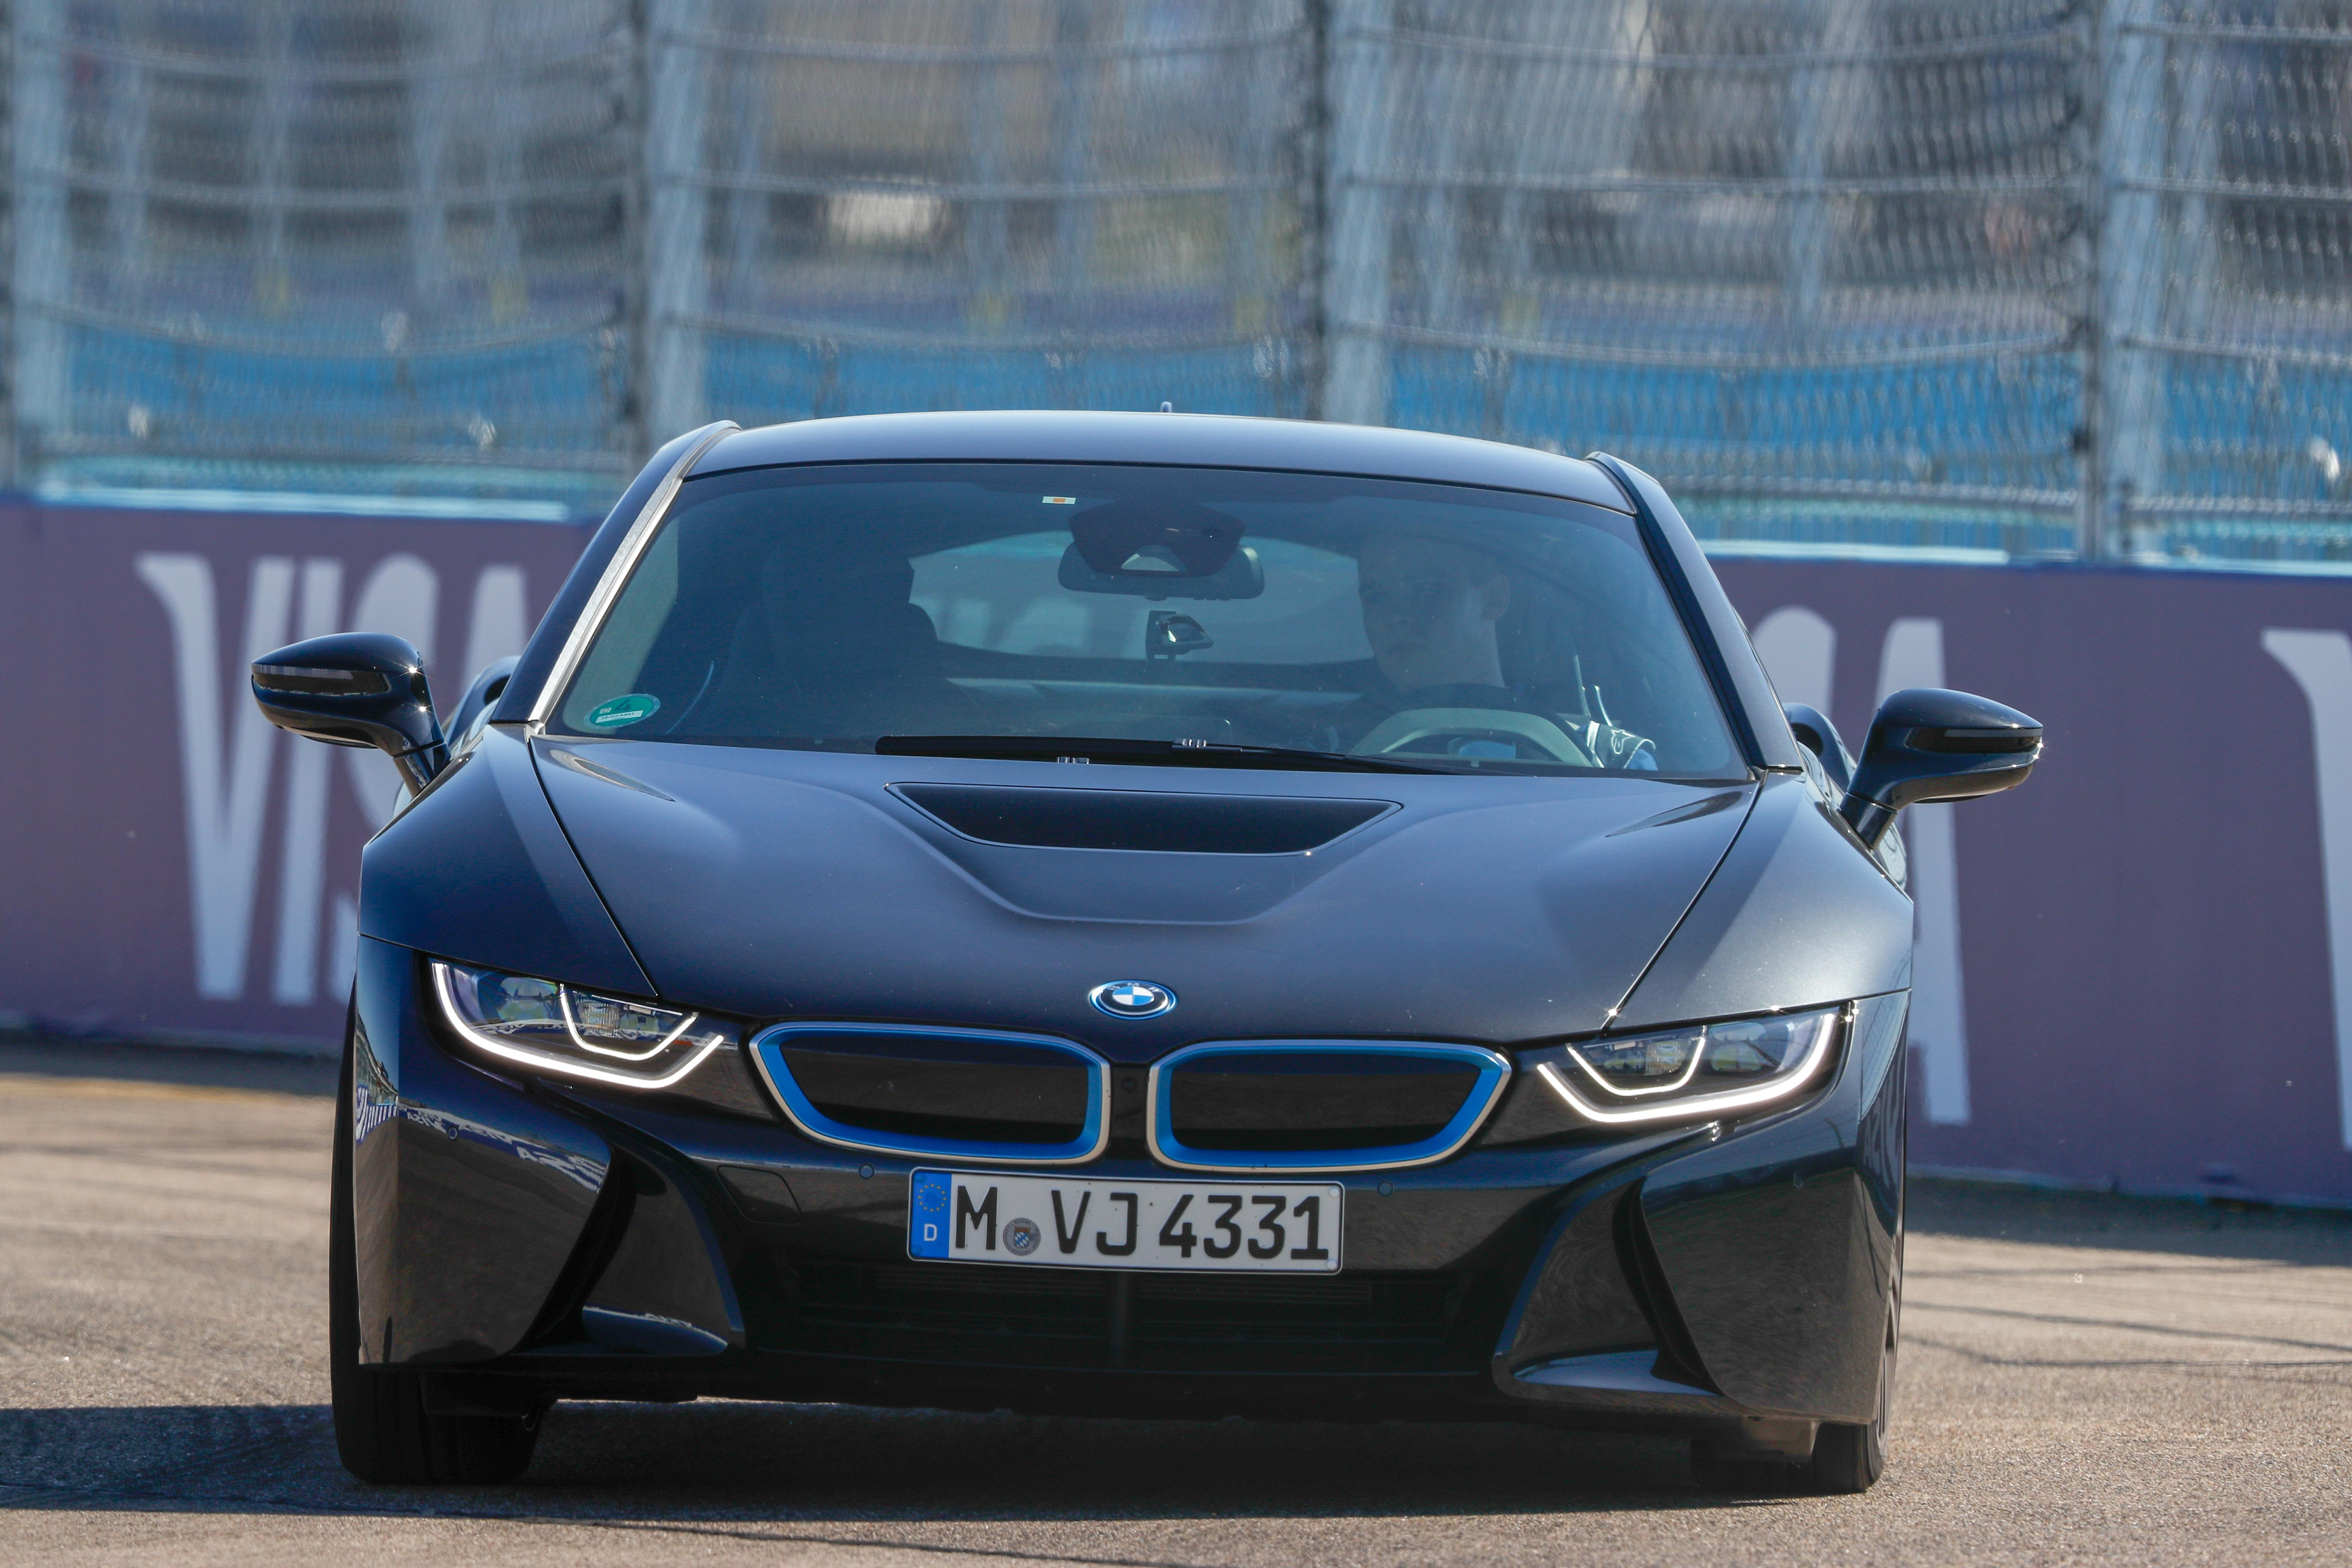 I began my first few laps in the BMW i8 slowly before gradually improving my pace